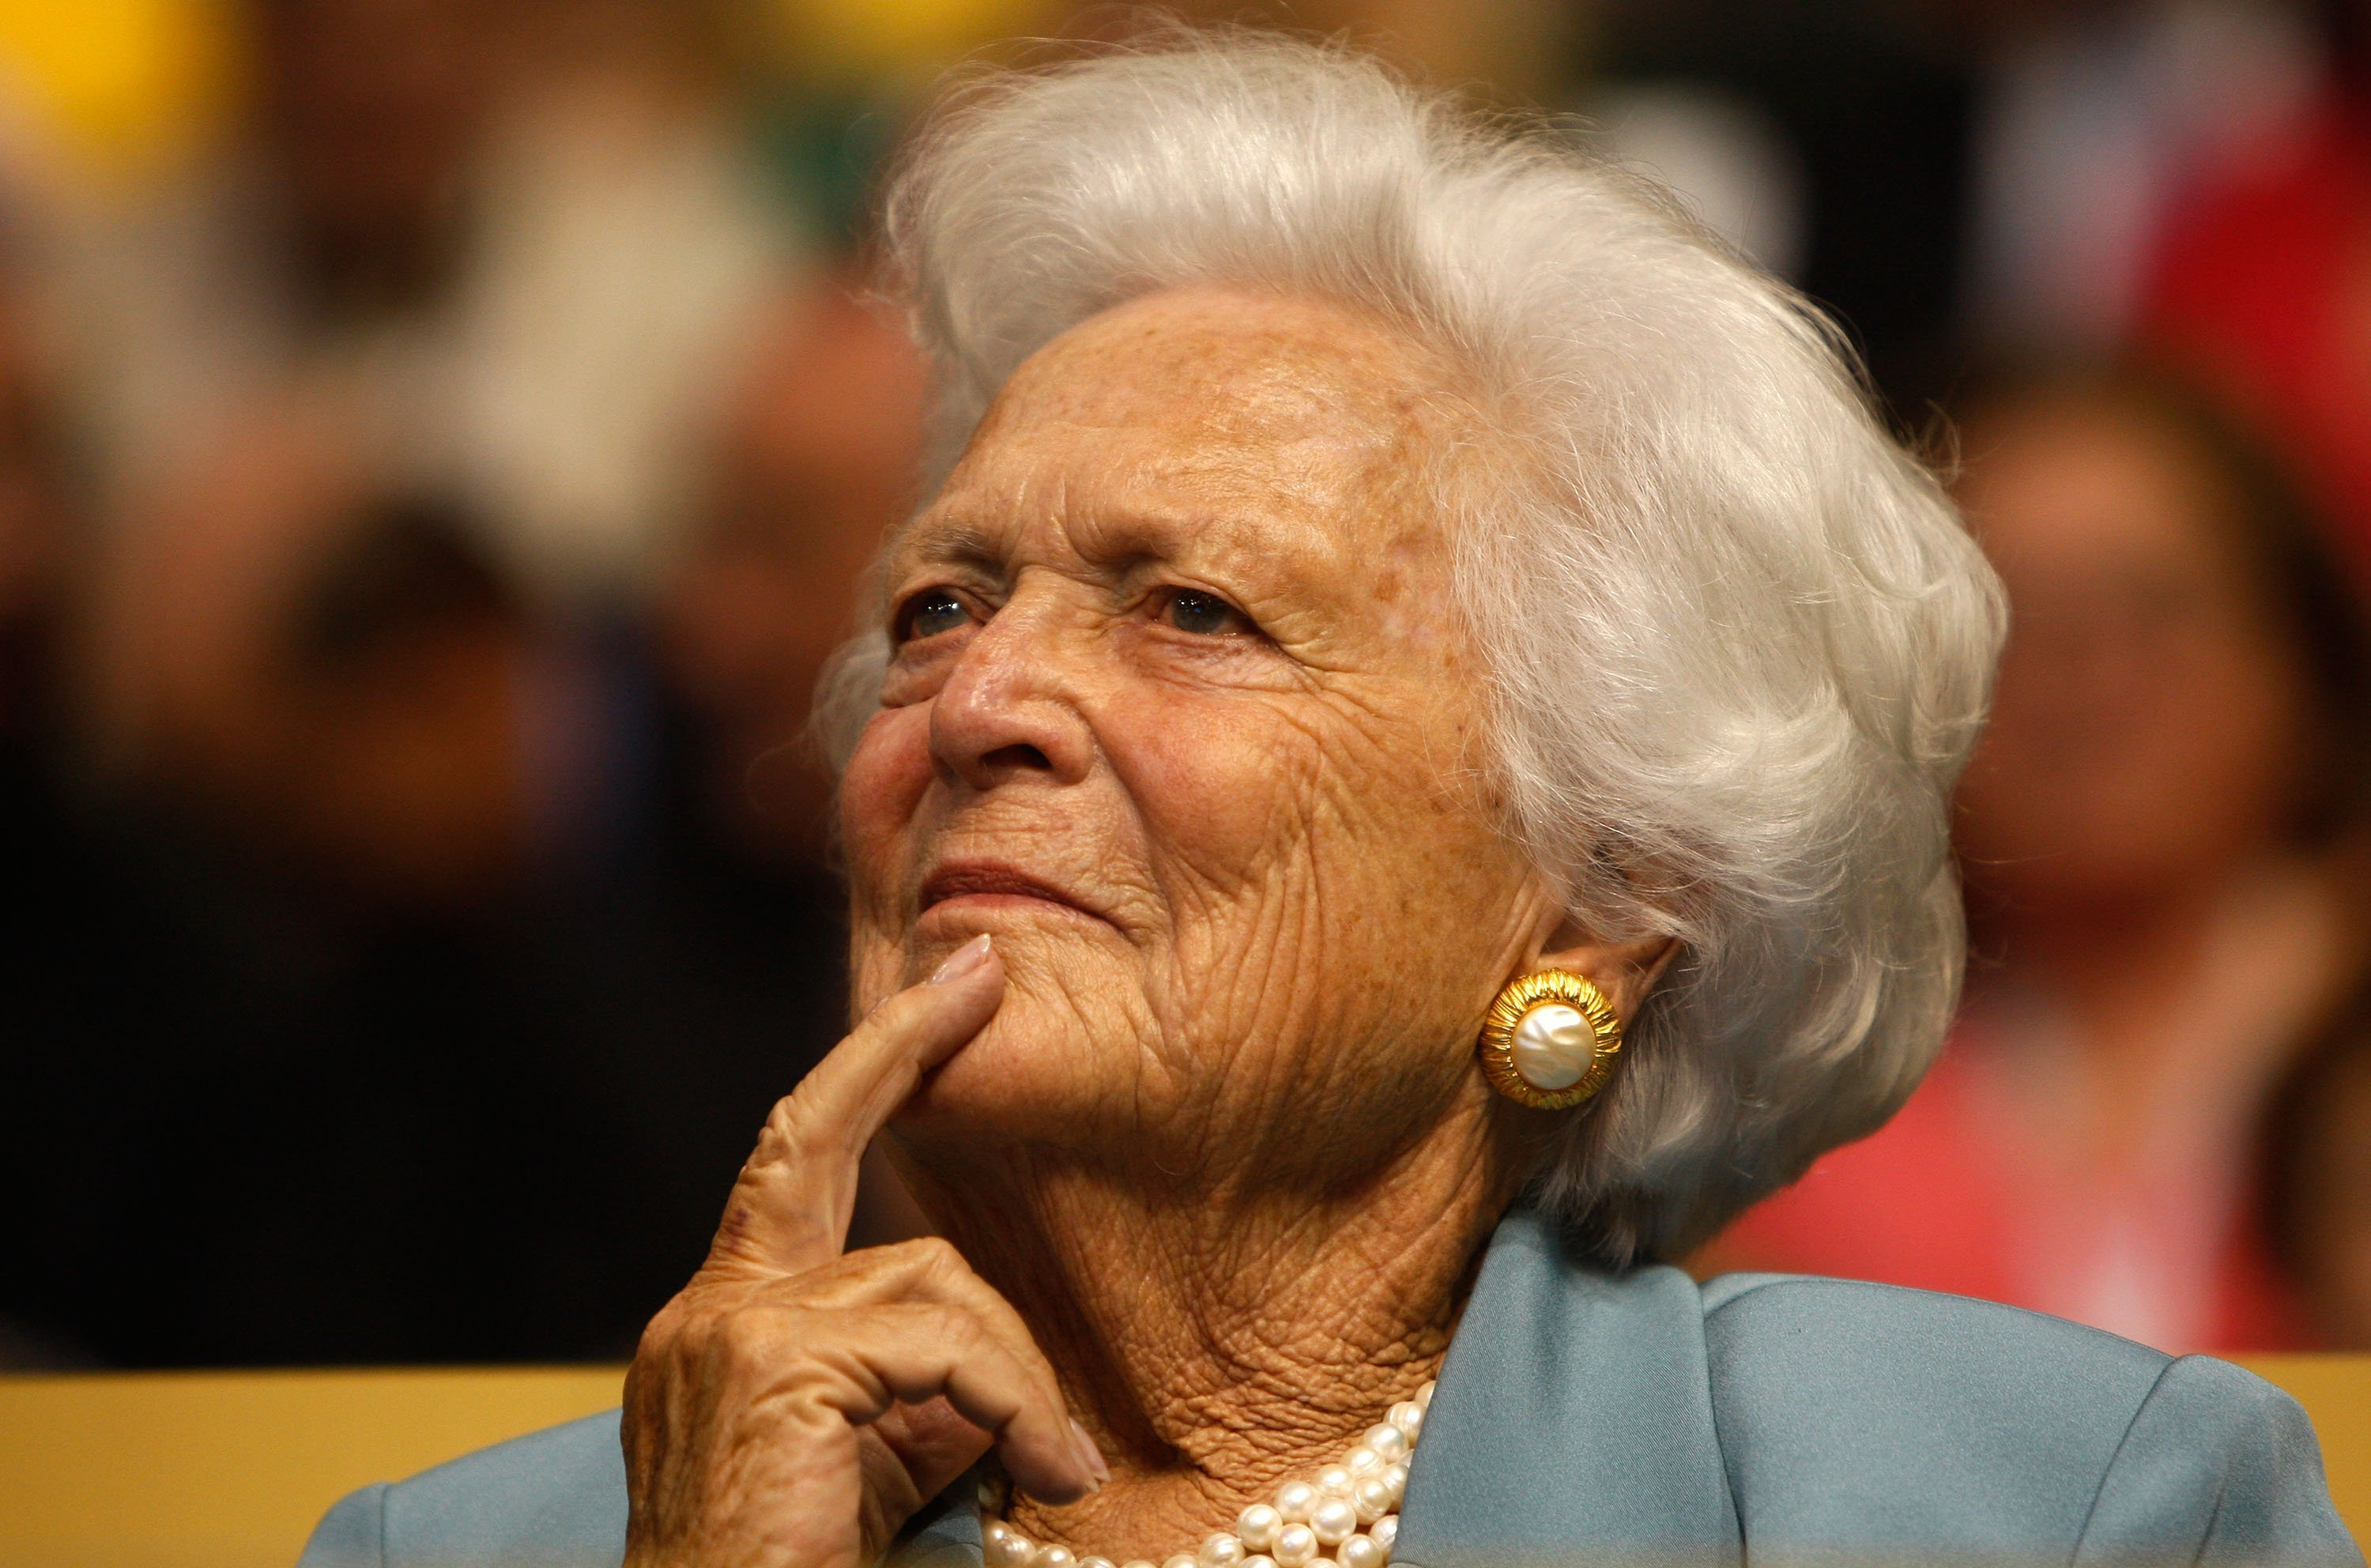 Image result for Barbara Bush in great spirits and feisty, source says